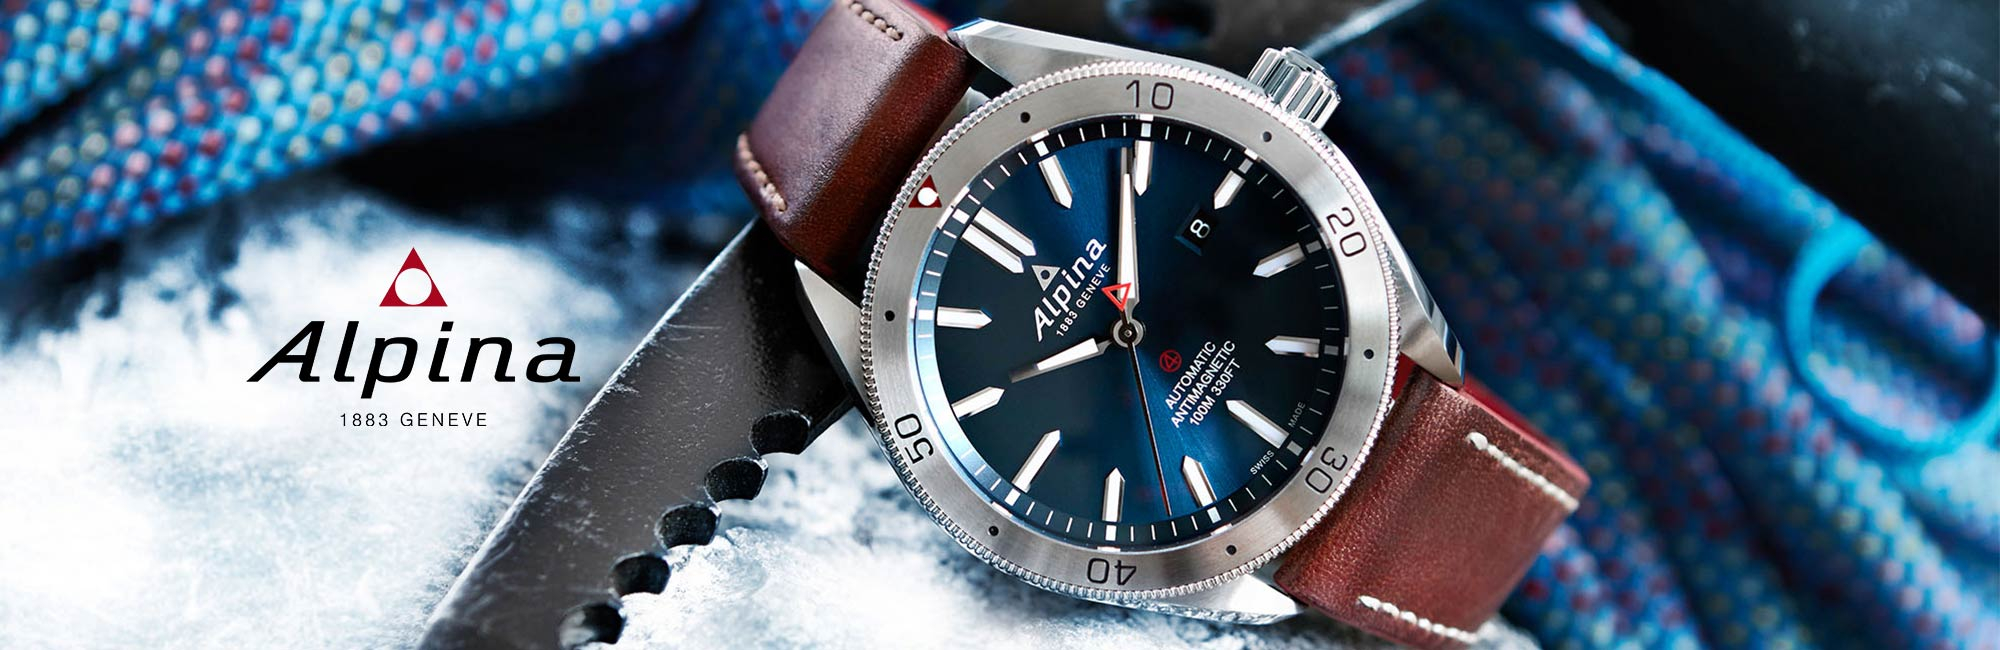 Alpina Watches Chronographs And Automatic Watches Designer Bags - Alpina watches price